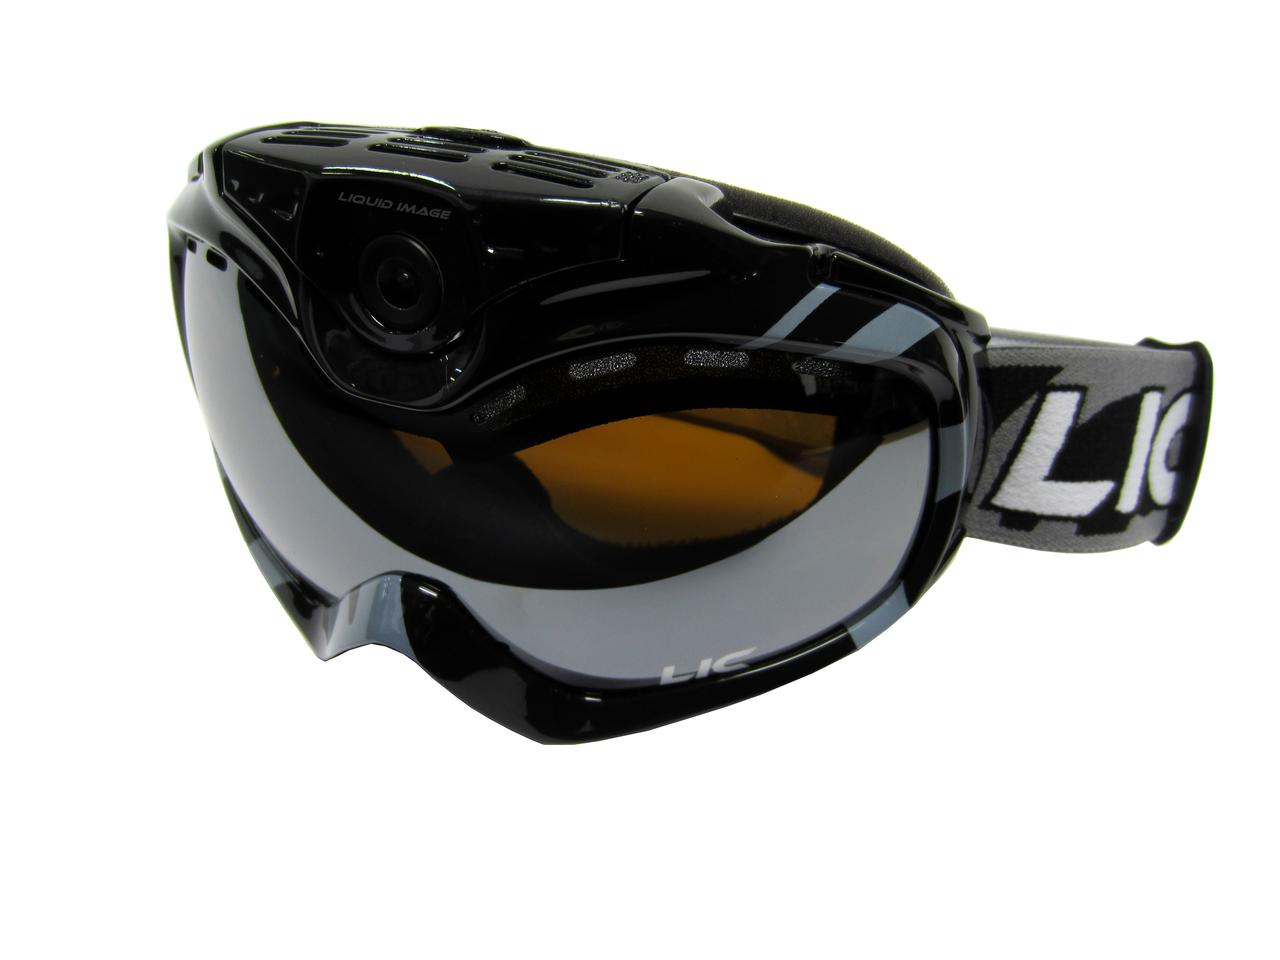 The new snow sports Apex HD goggle cam from Liquid Image with built-in Wi-Fi and GPS